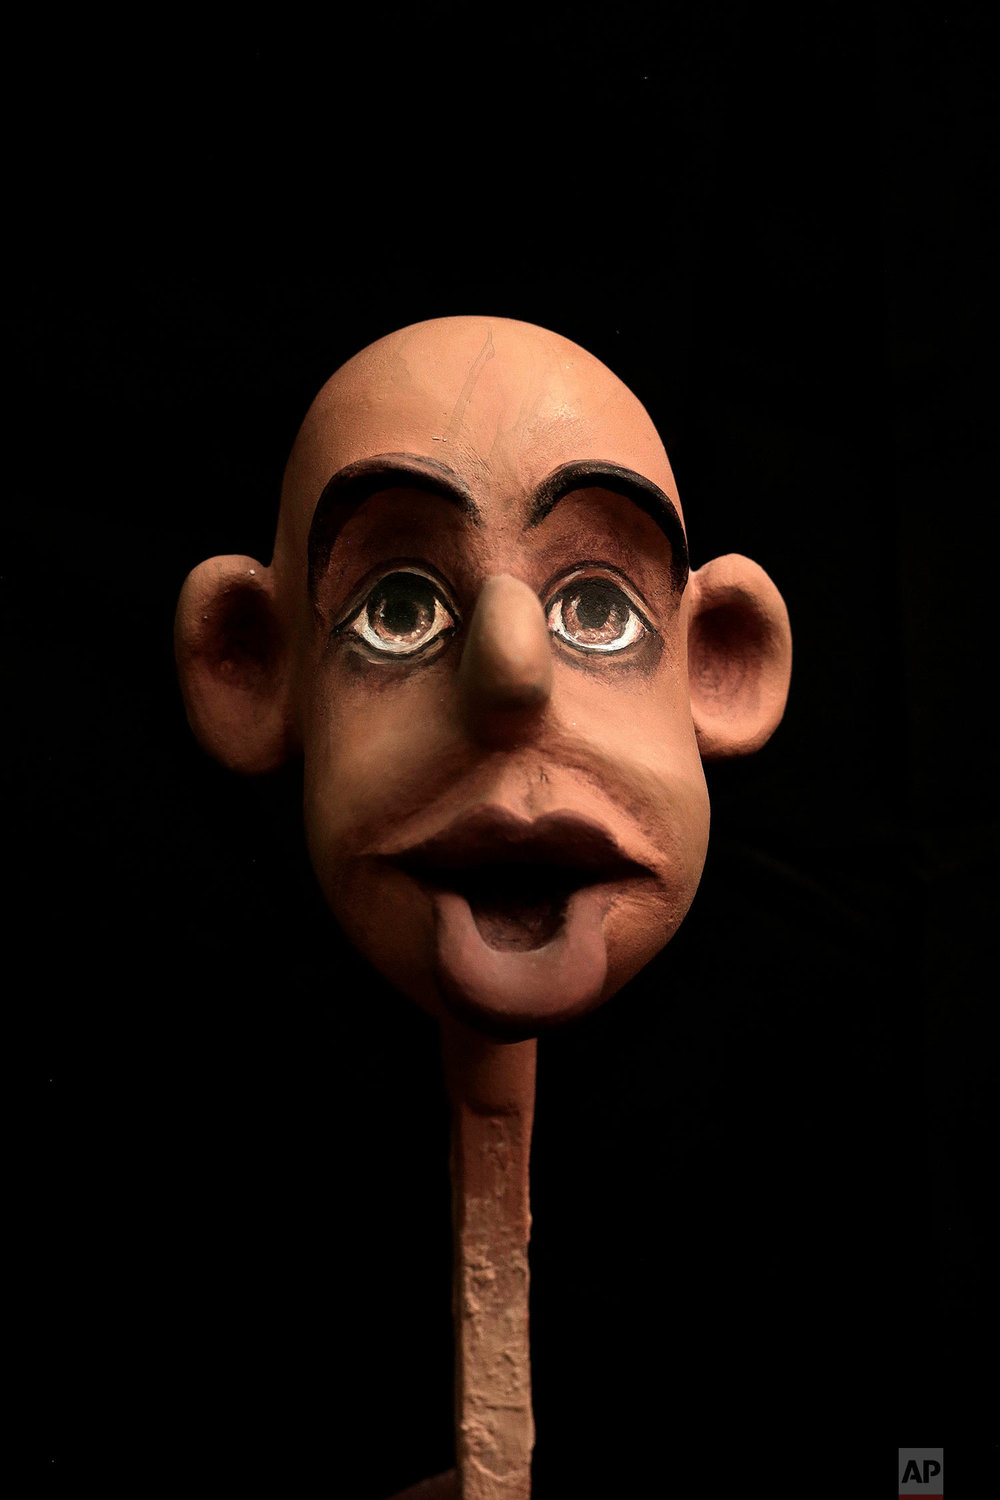 This April 24, 2018 photo, shows the face of a puppet in the process being made by Egyptian artist Mohamed Fawzi Bakkar, at his workshop, in Cairo, Egypt. Bakkar designs and builds marionettes from scratch, hoping to revive a traditional art. The 32-year-old spends hours or even days designing puppets inspired by Egyptian life -- farmers, street vendors, butchers and the occasional celebrity. (AP Photo/Nariman El-Mofty)